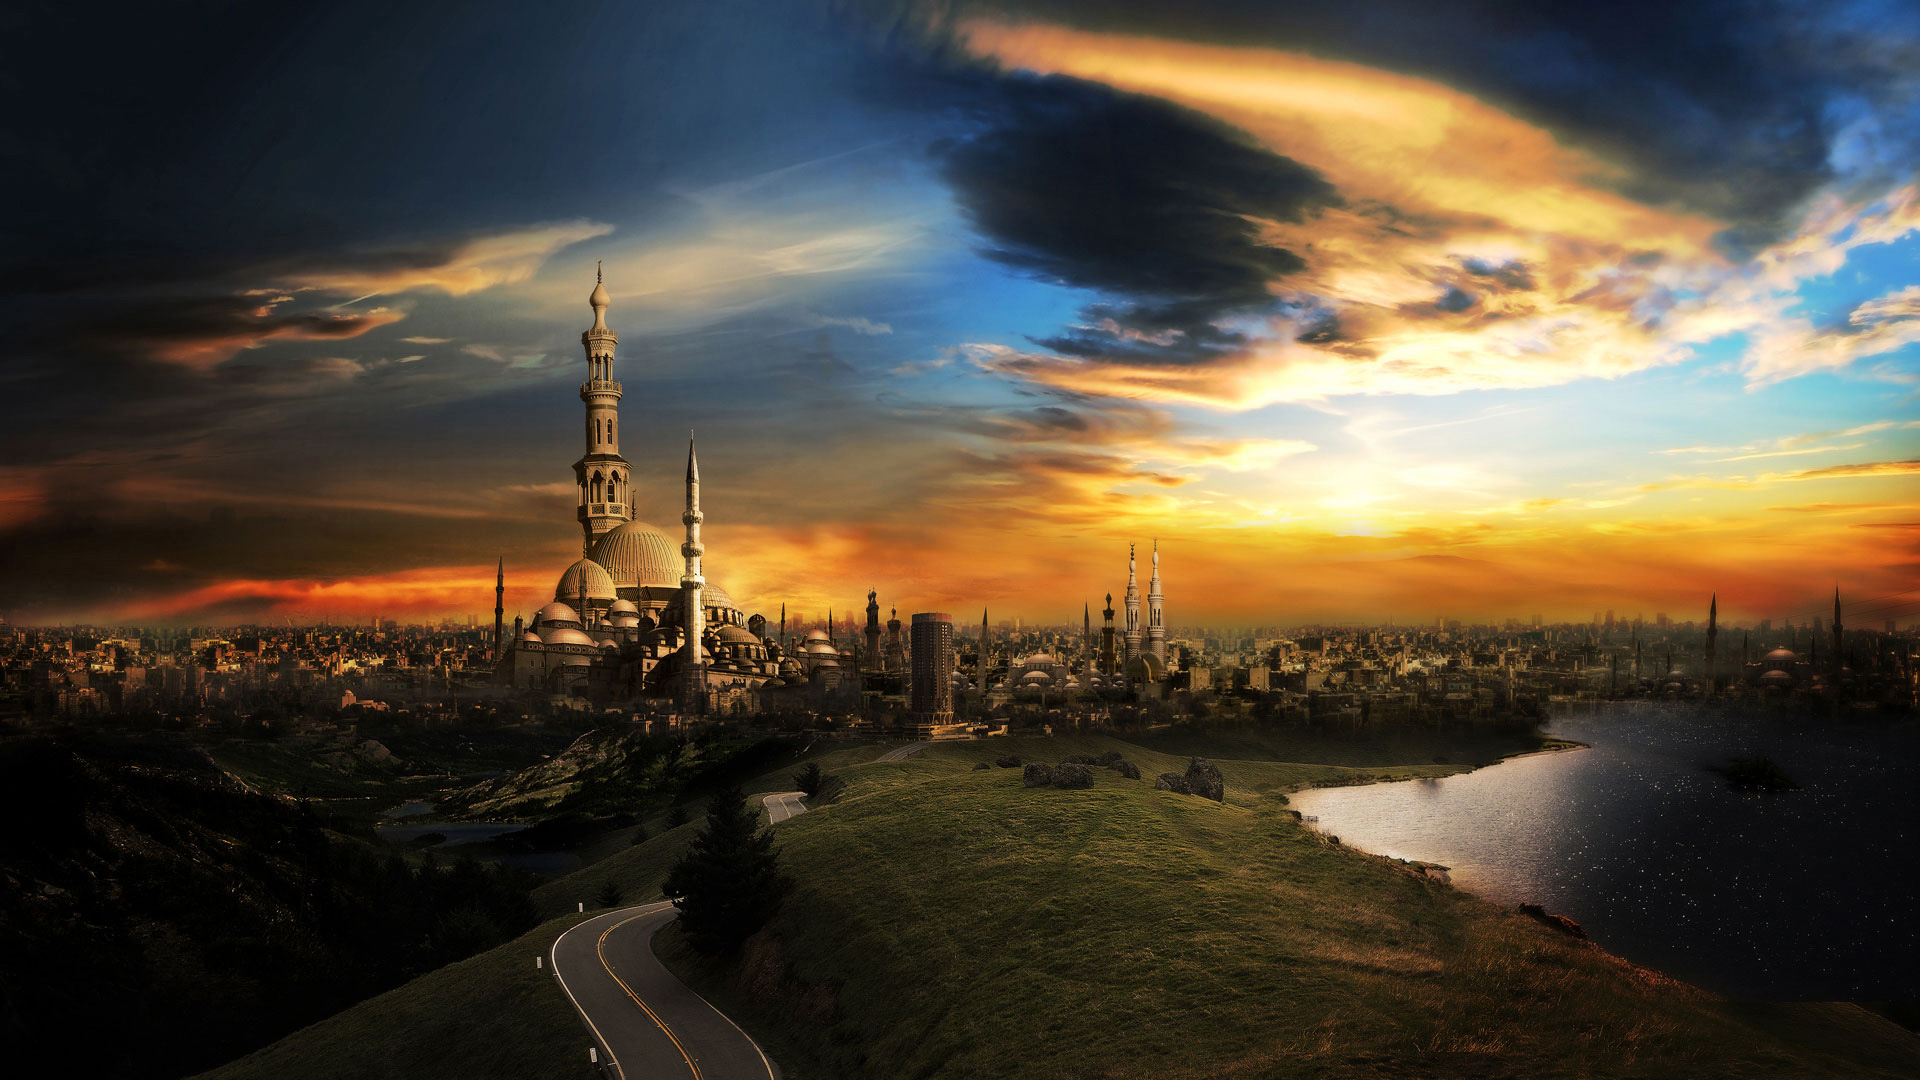 The City of a Thousand Minarets